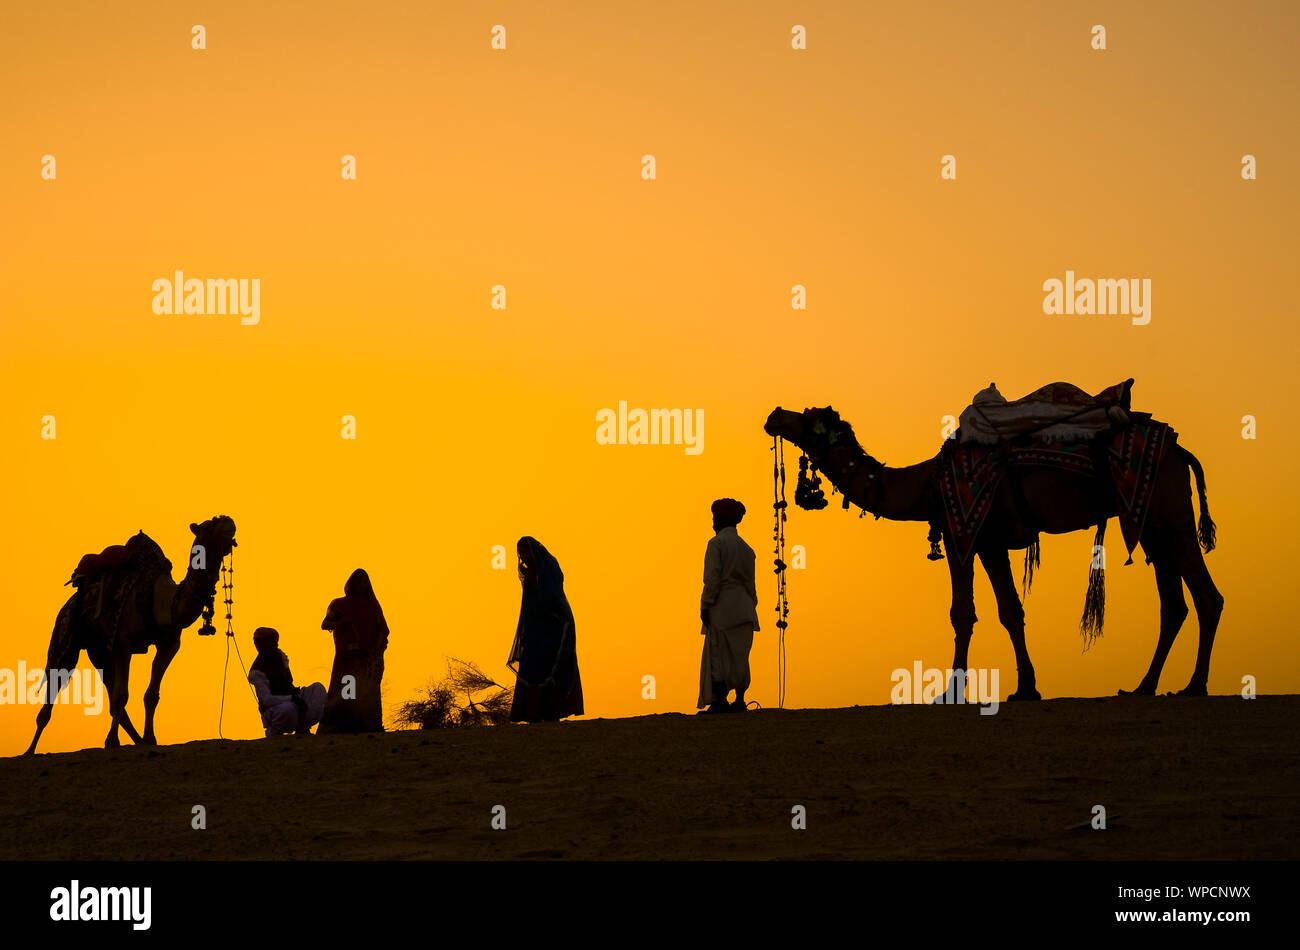 Jaisalmer, rajasthan, india - april 18th, 2018: indian cameleers (camel drivers) with camels silhouettes in dunes of Thar desert on sunset. Stock Photo